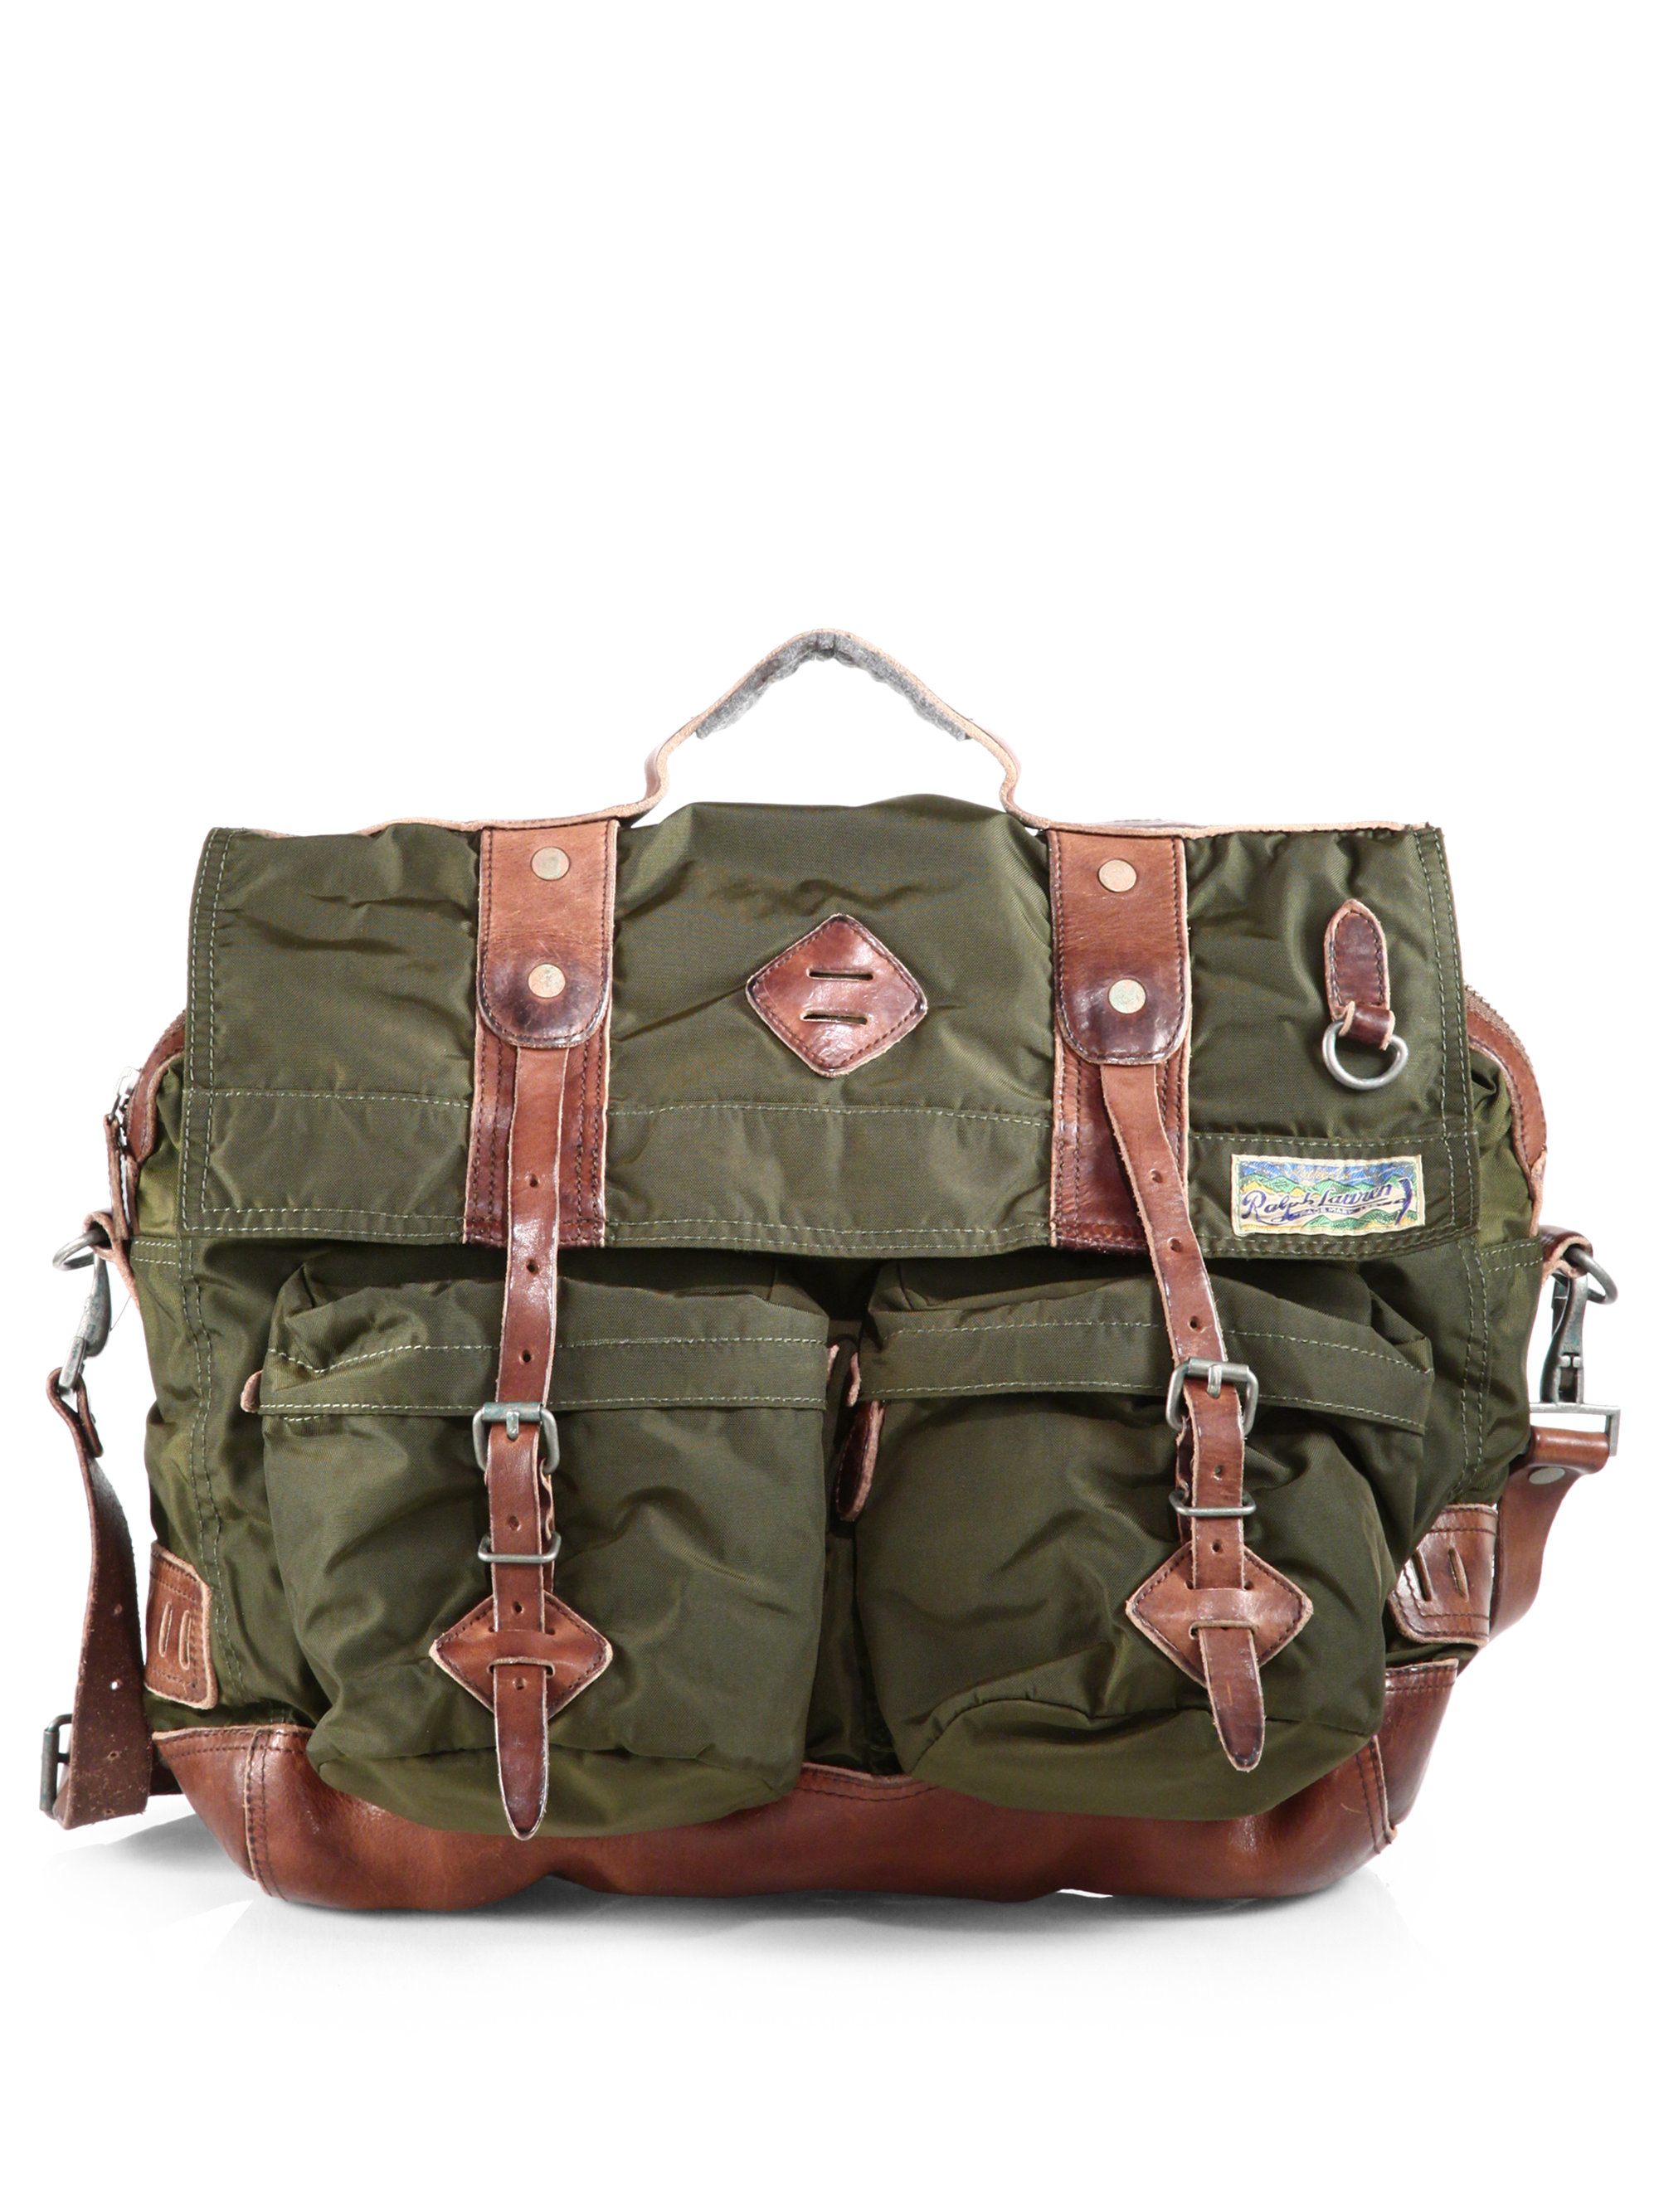 849bede358e6 ... discount code for lyst polo ralph lauren yosemite messenger in green  for men 6d1f4 2a40b